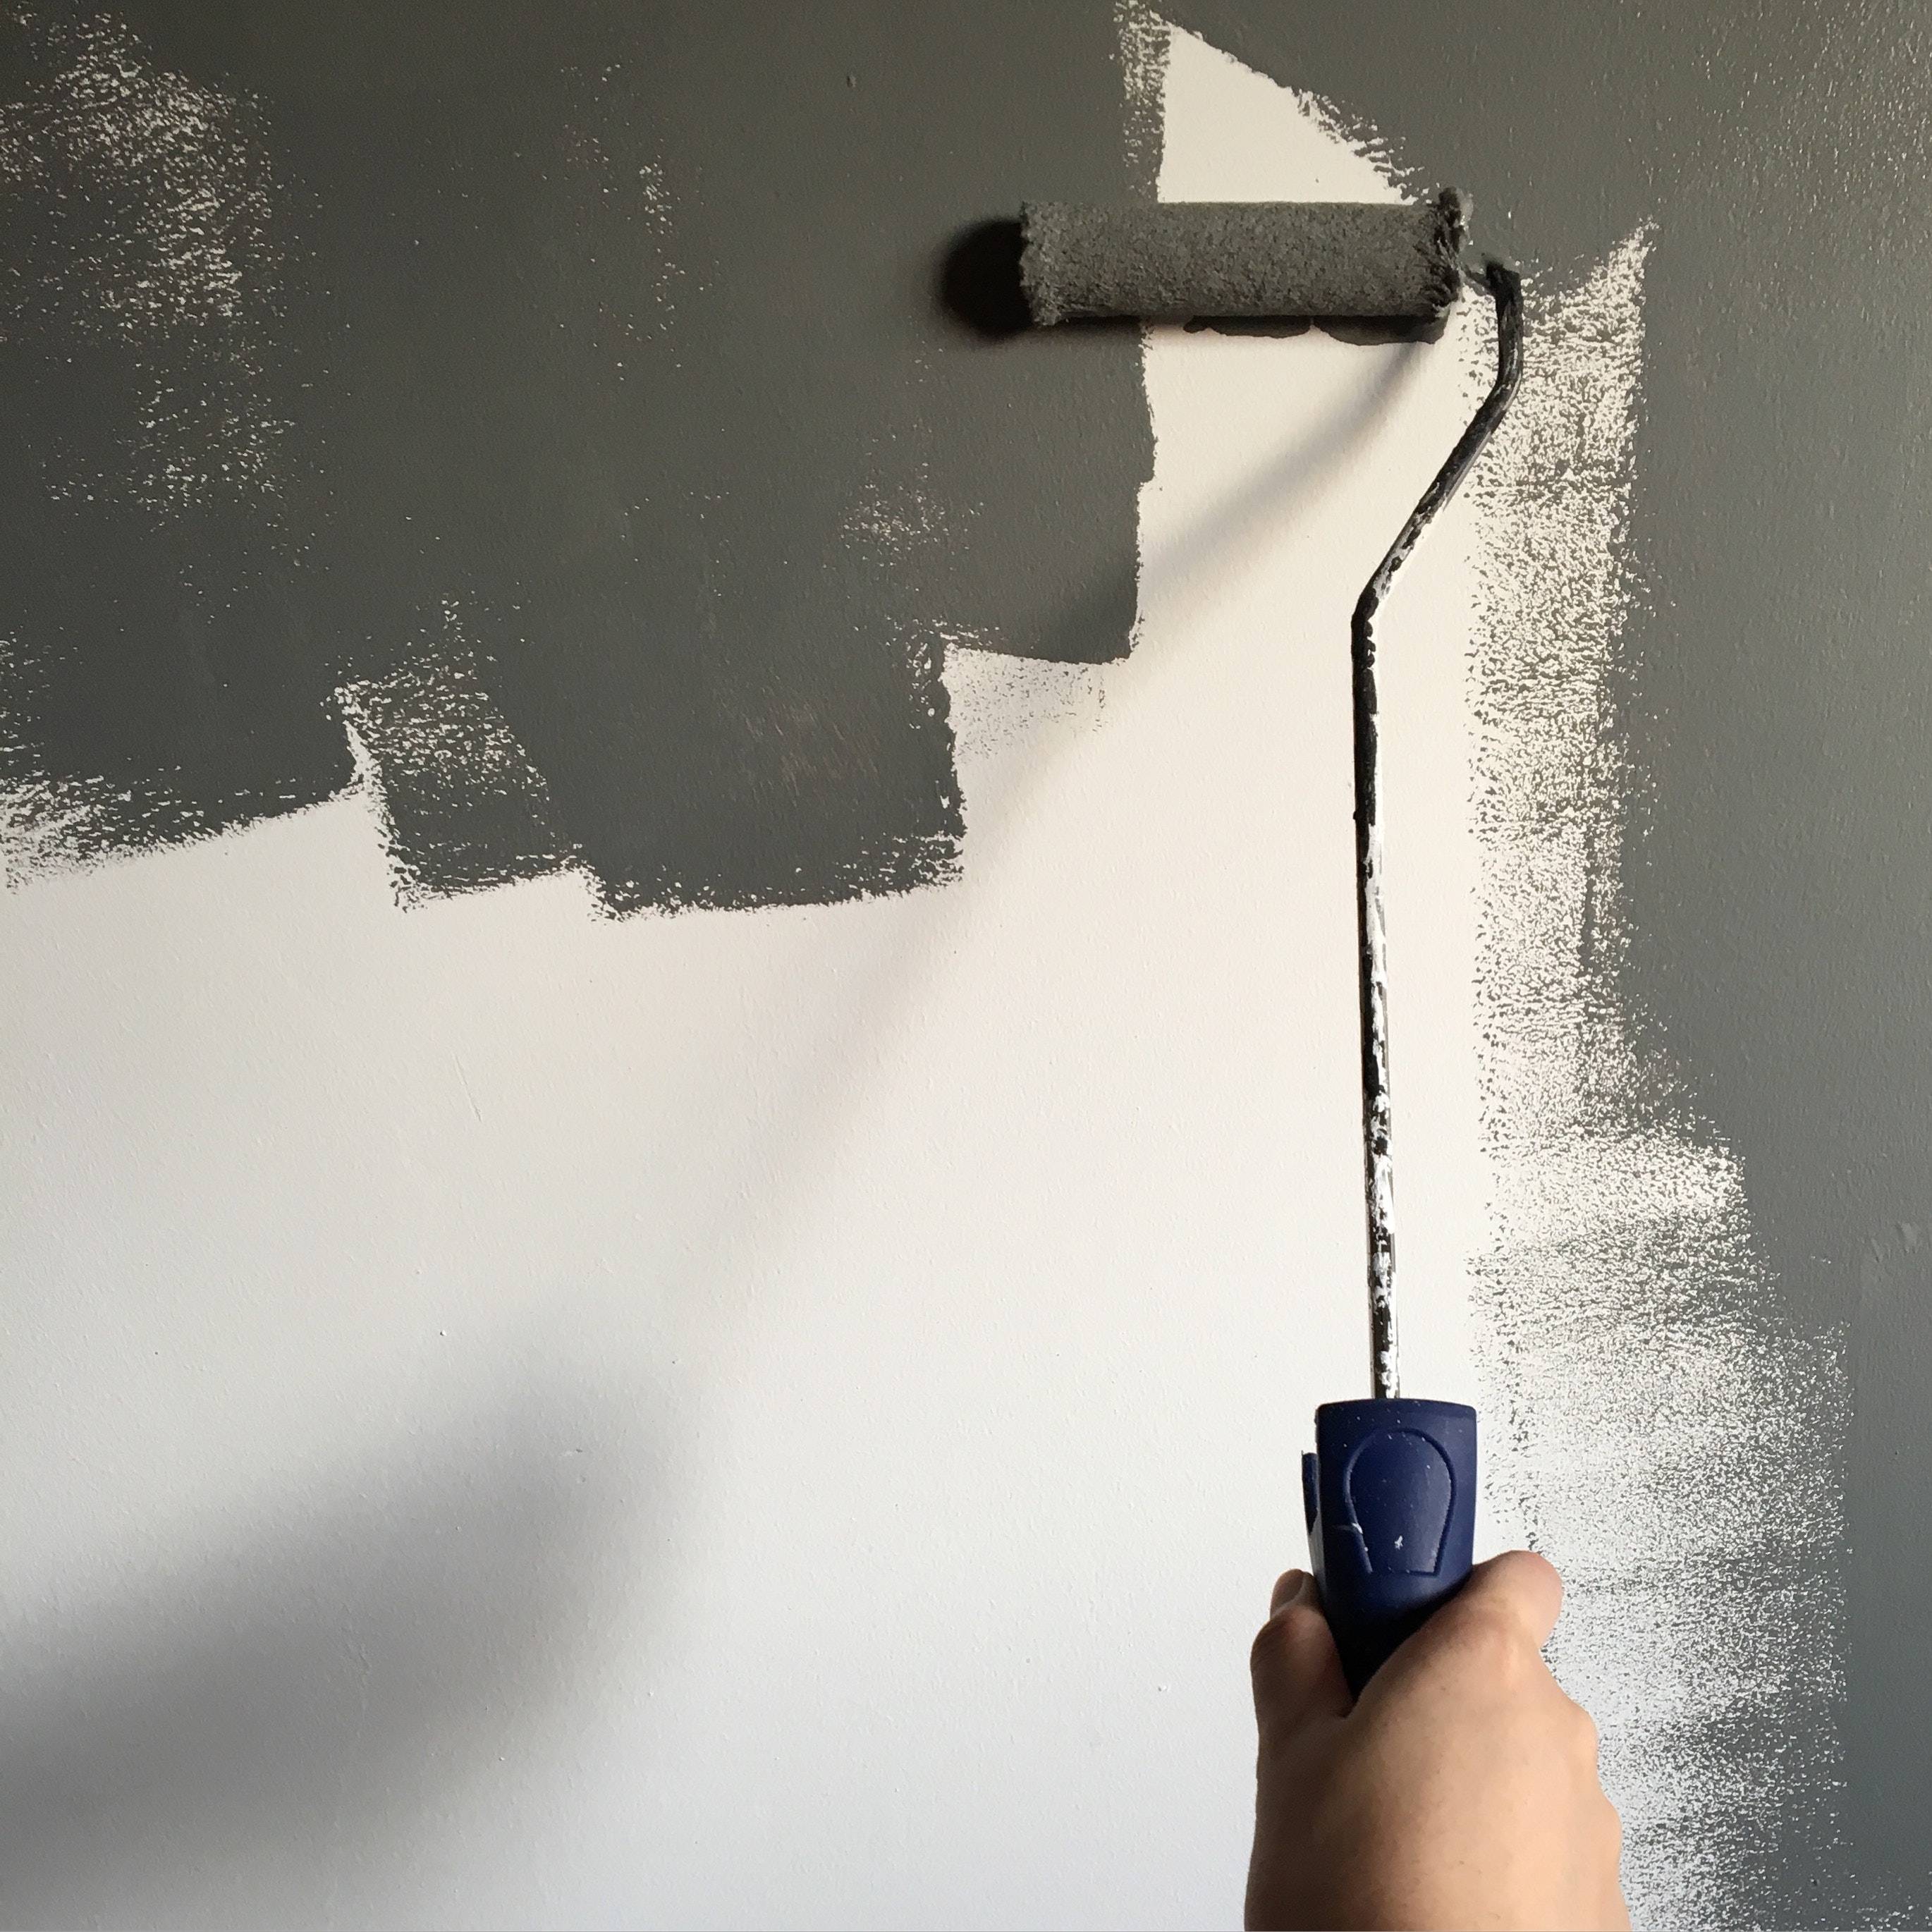 Painter holding a paint roller painting the wall grey